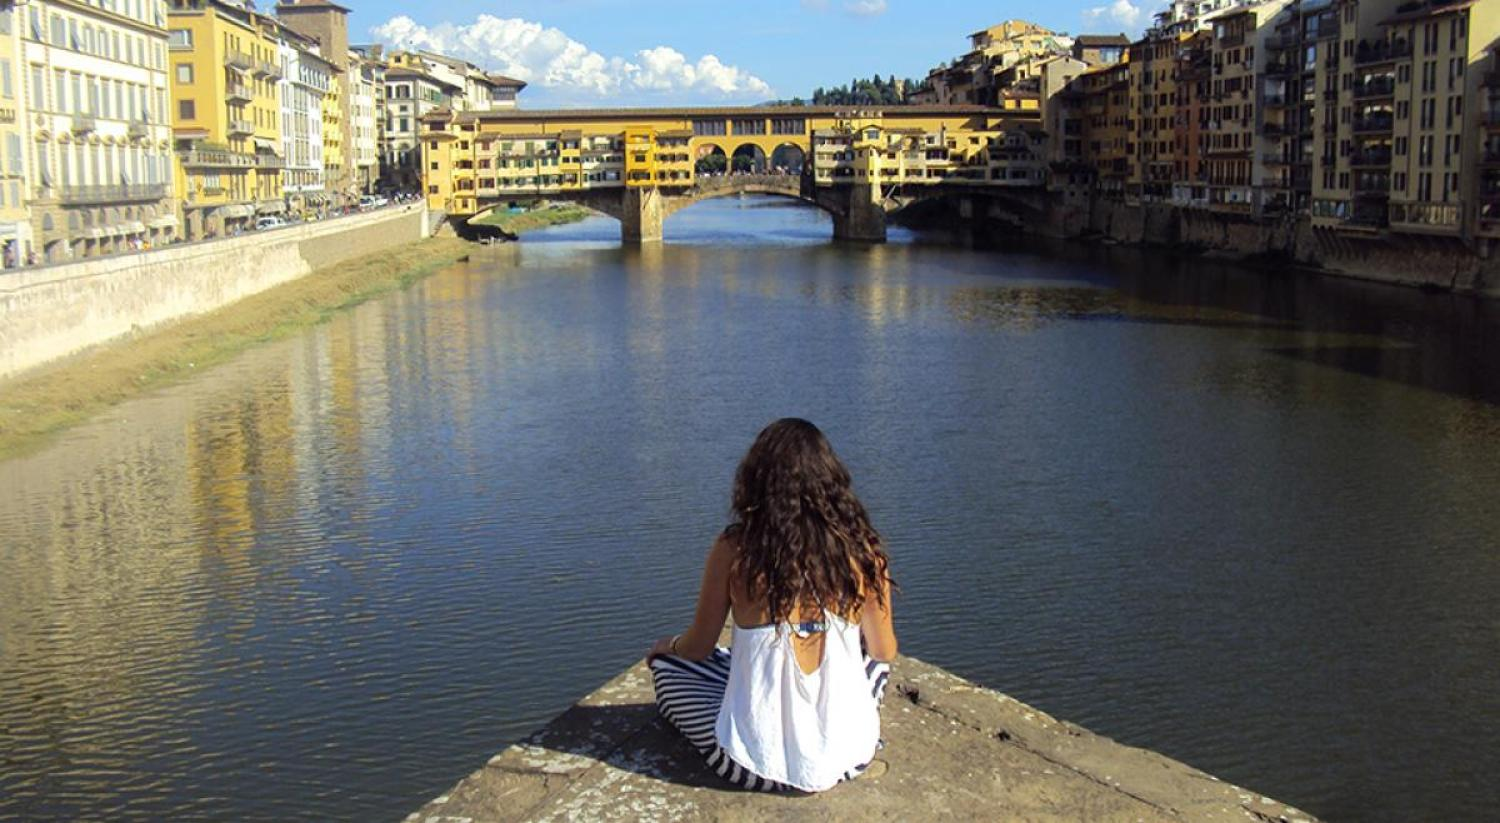 Student sitting along the Arno in Florence, Italy.